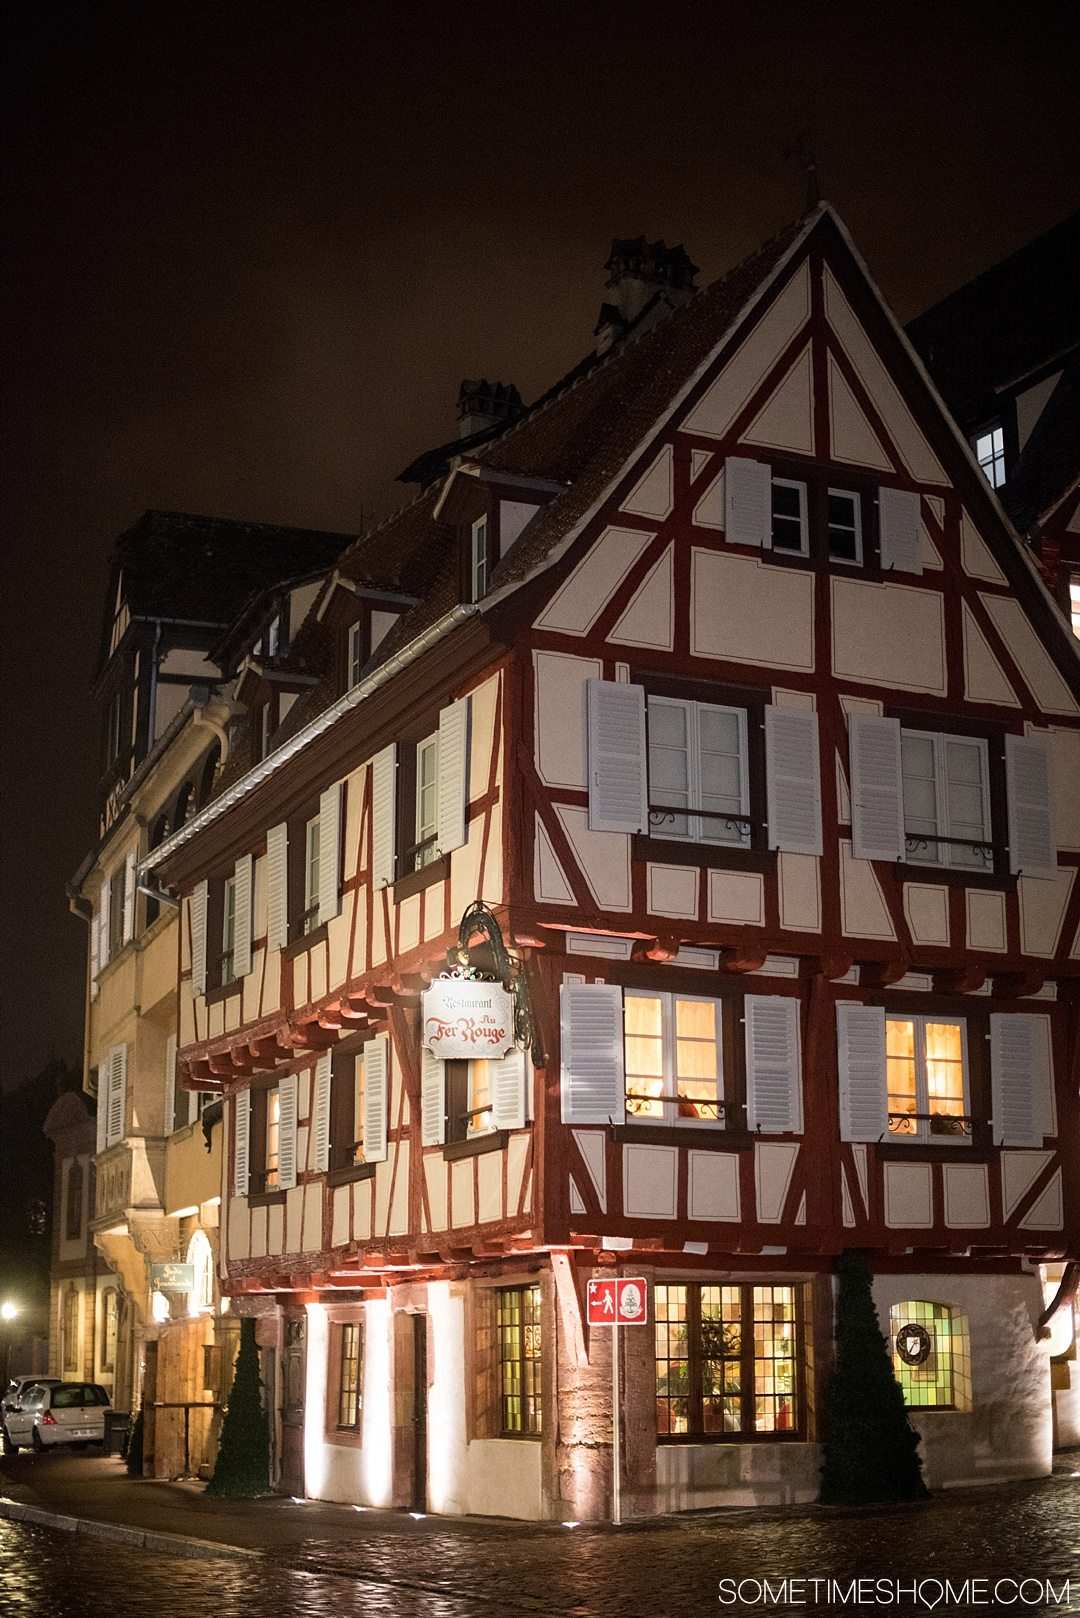 Foods you need to try in the Alsace region of France, including Colmar. Everything from drinks to entrees and all the comfort foods you can handle! Click through to see photos of these amazing delights and gain more insight into the culture of the area through food! #AlsaceFrance #ColmarFrance #AlsaceFood